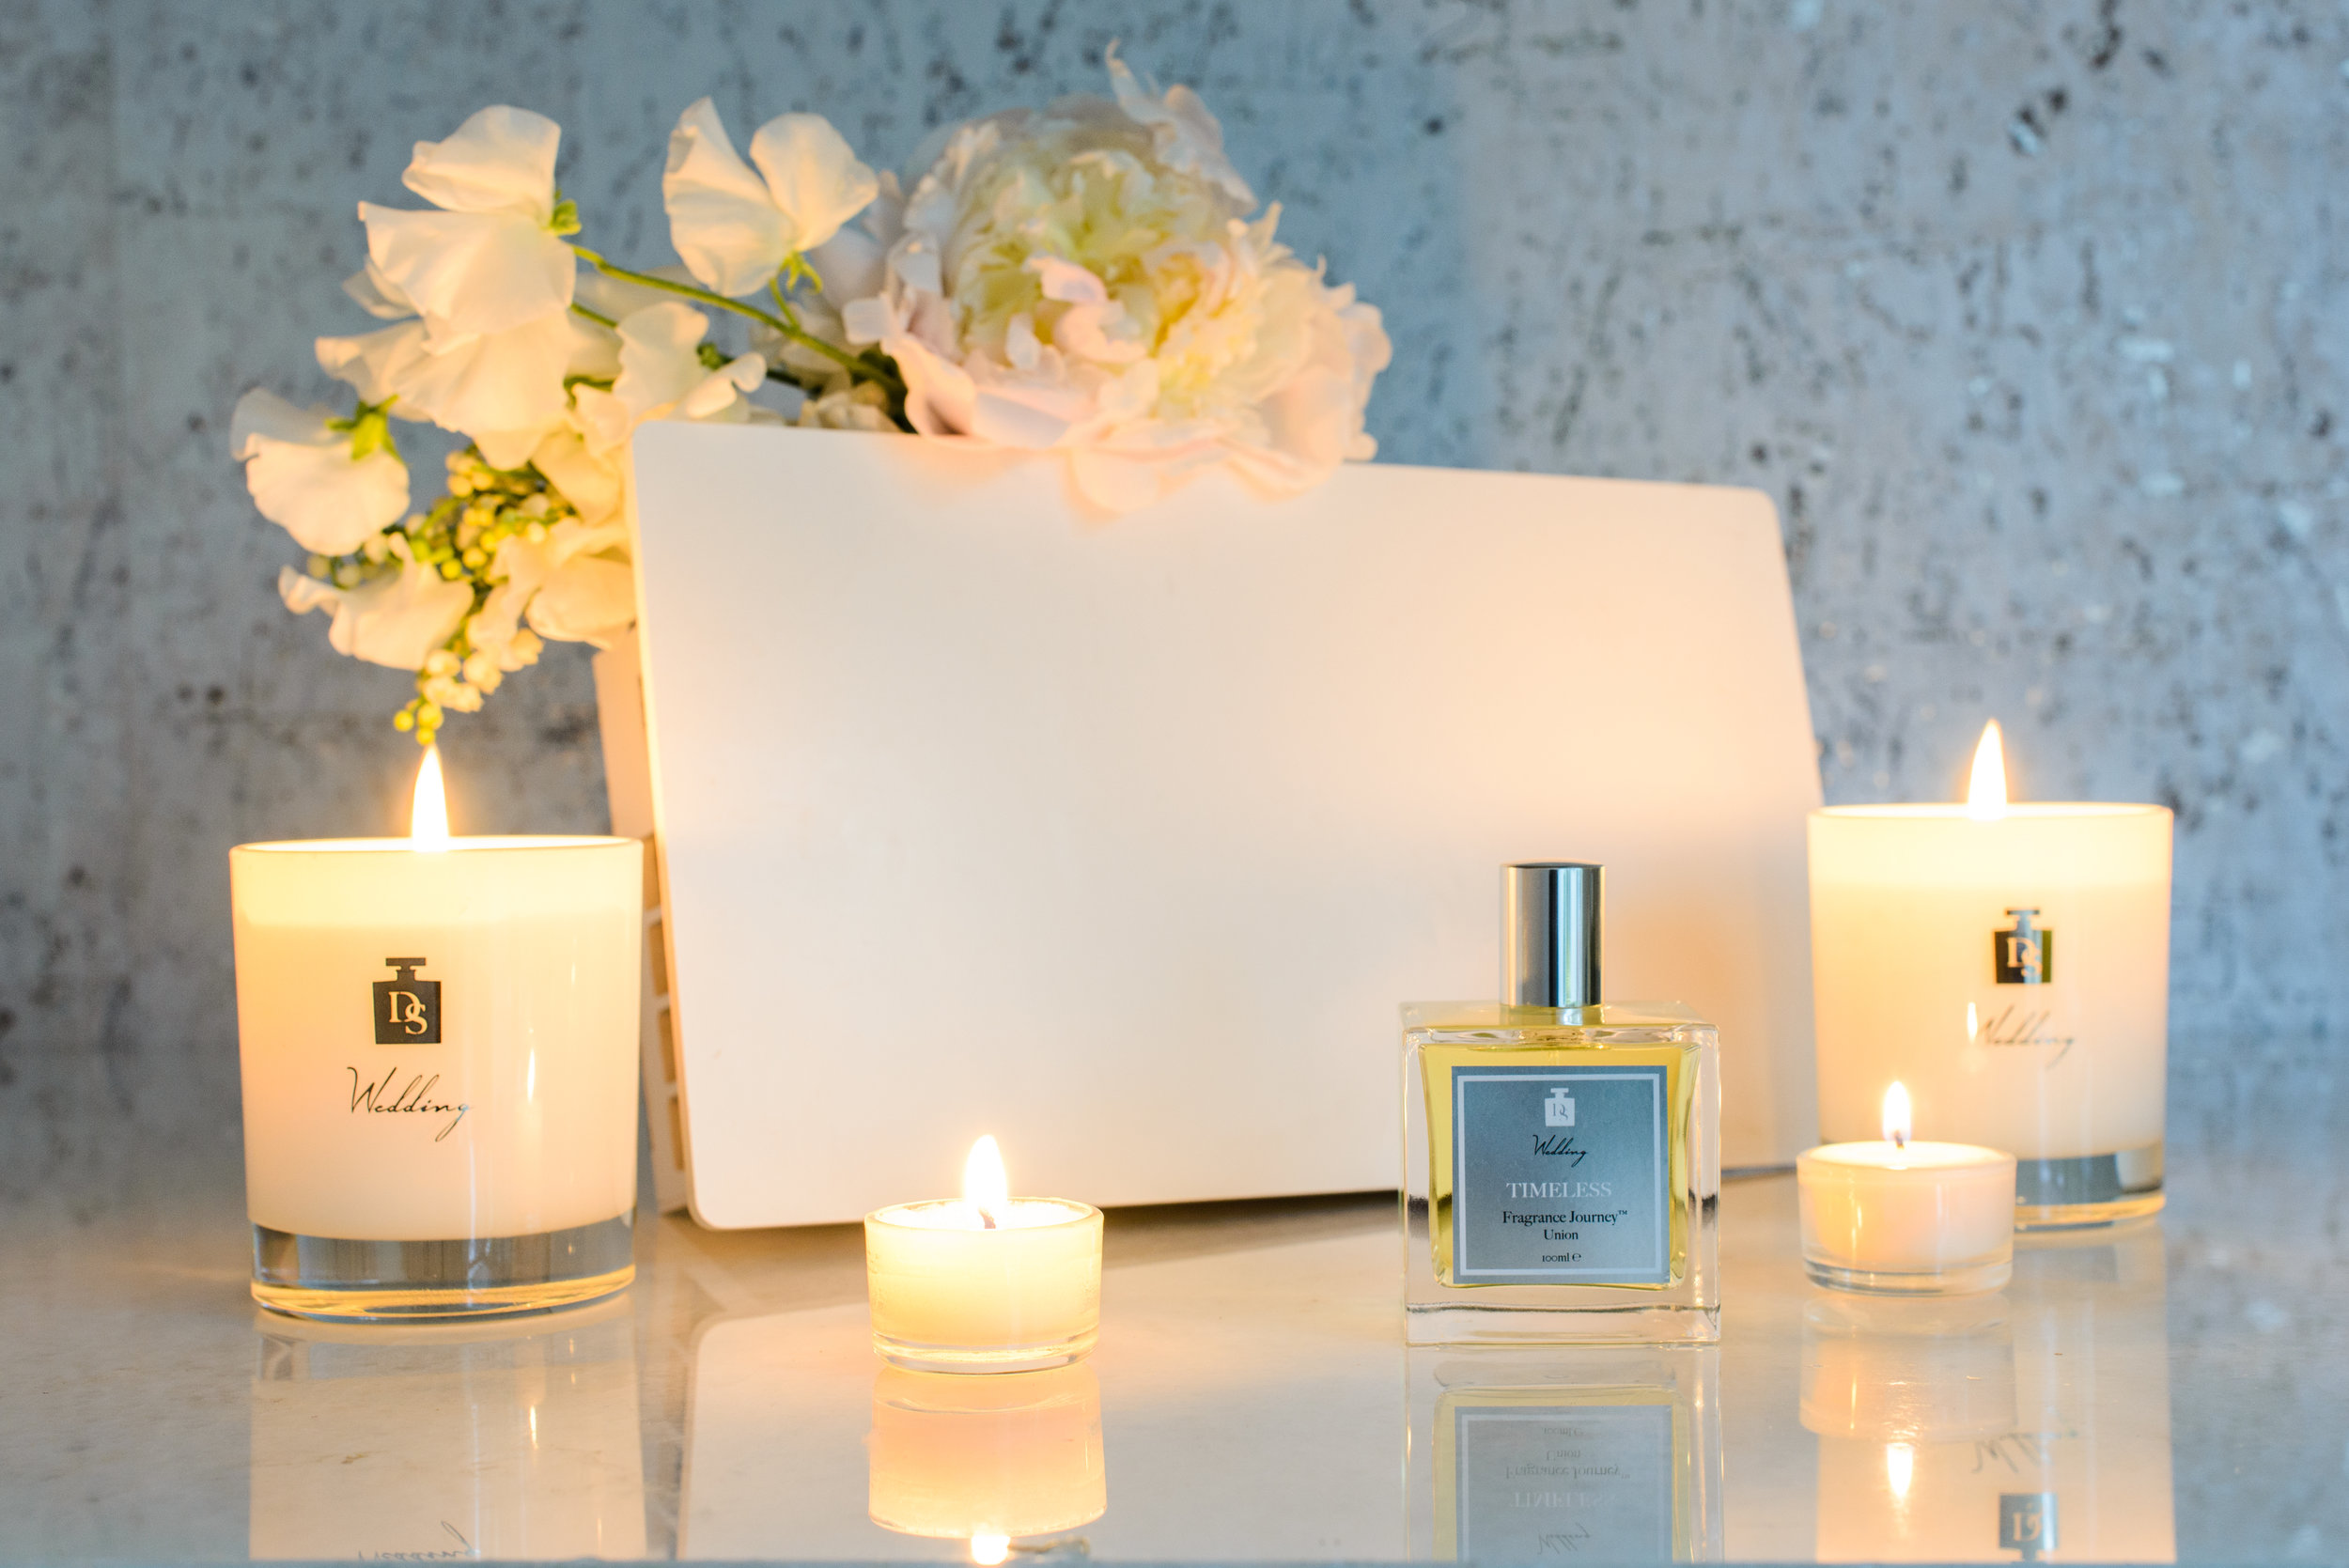 Design in Scent Collection - Scenting the Air with Candles, Mist and Intelligent Diffuser | Lamare London | Luxury Wedding Planner London